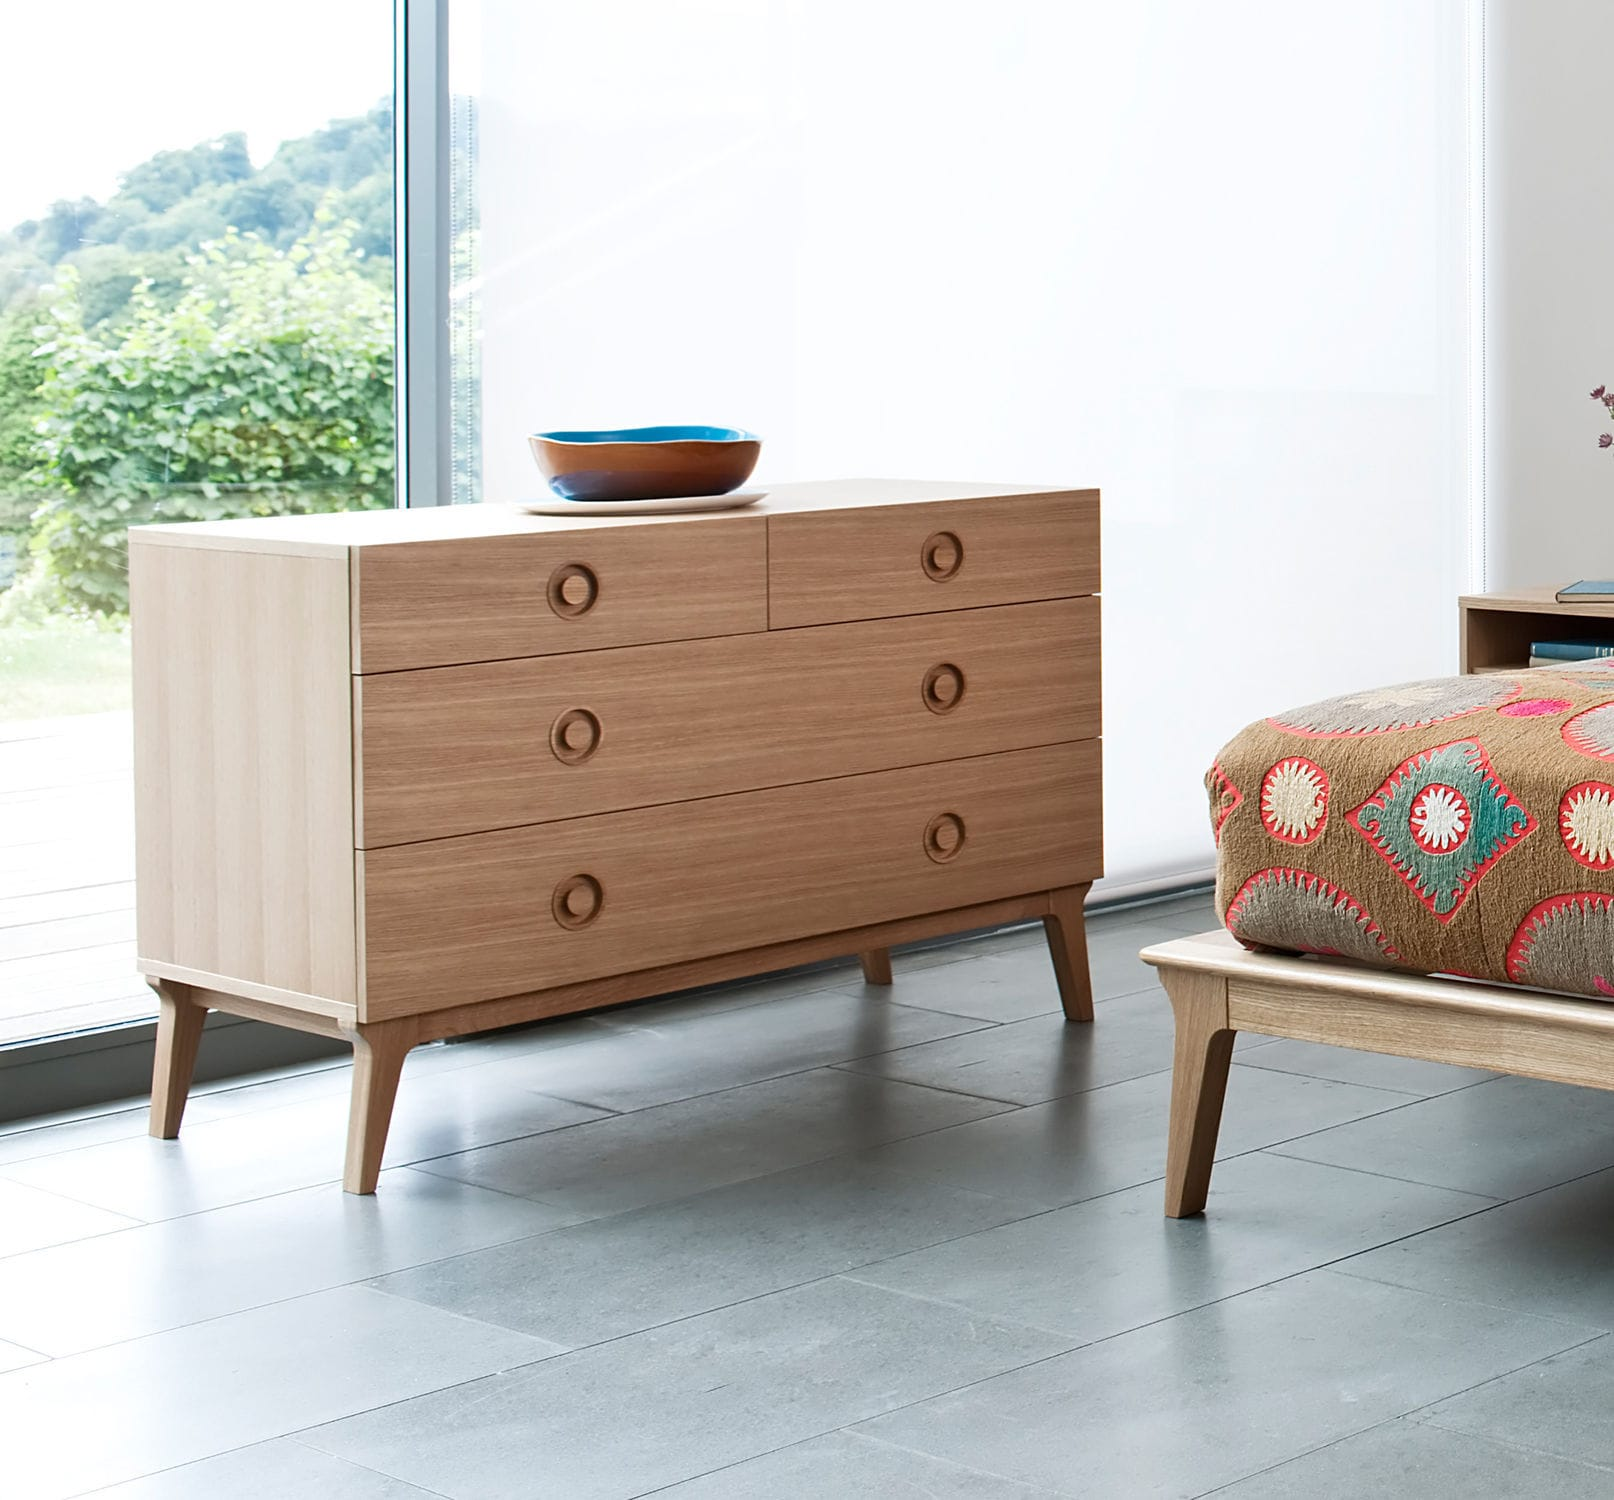 Contemporary chest of drawers   oak   walnut   solid wood VALENTINE by  Matthew Hilton case. Contemporary chest of drawers   oak   walnut   solid wood